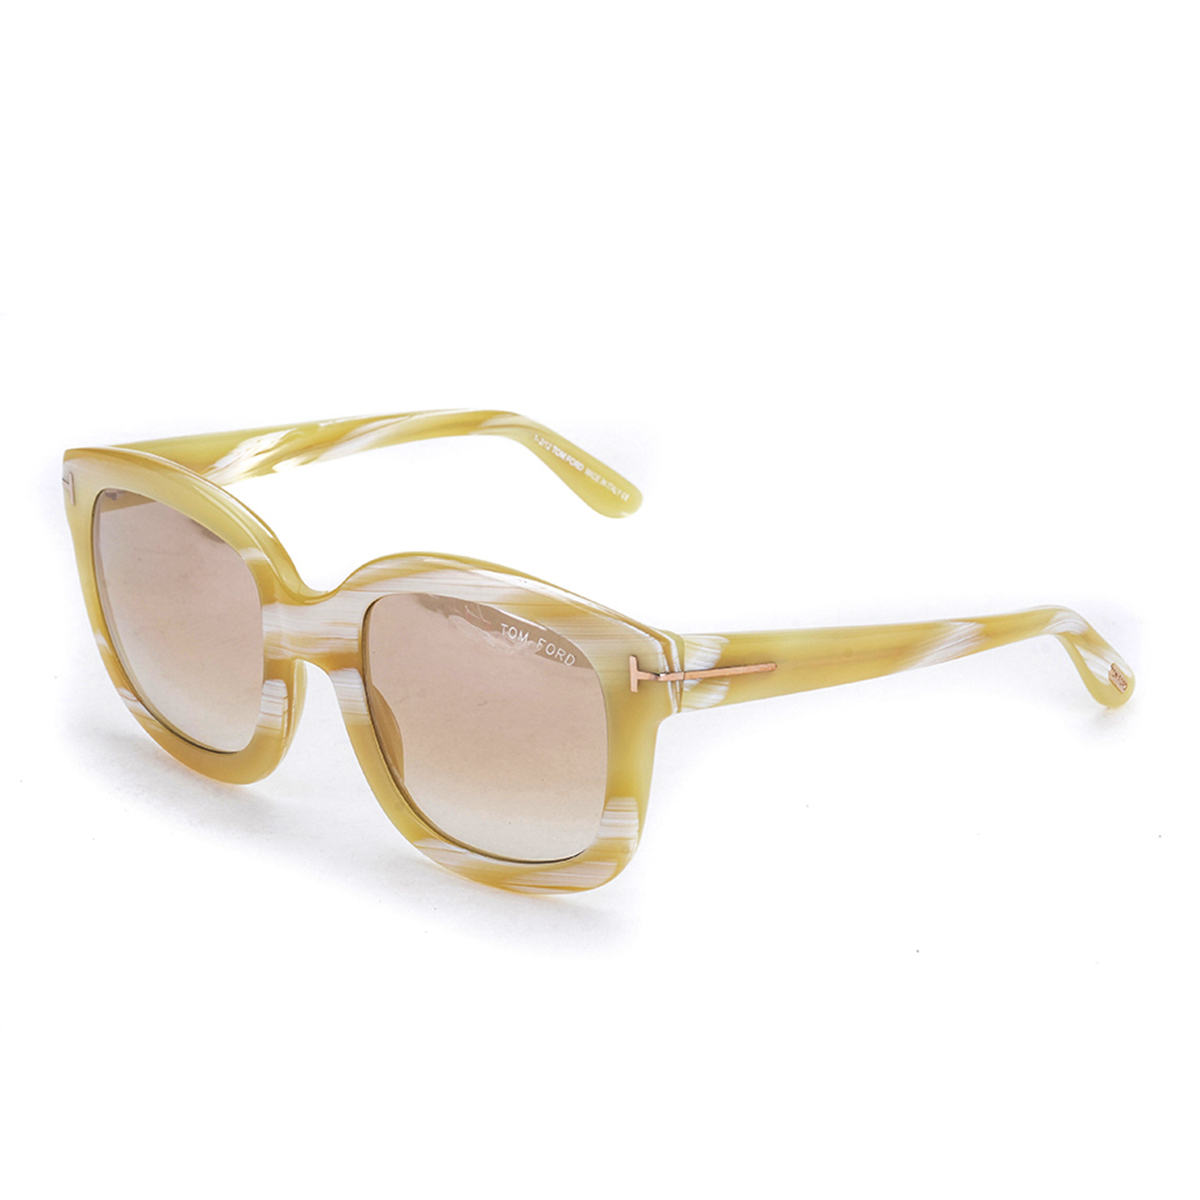 Designer Eyeglass Frames Tom Ford : Tom Ford Womens Christophe TF279 Oversized Sunglasses ...